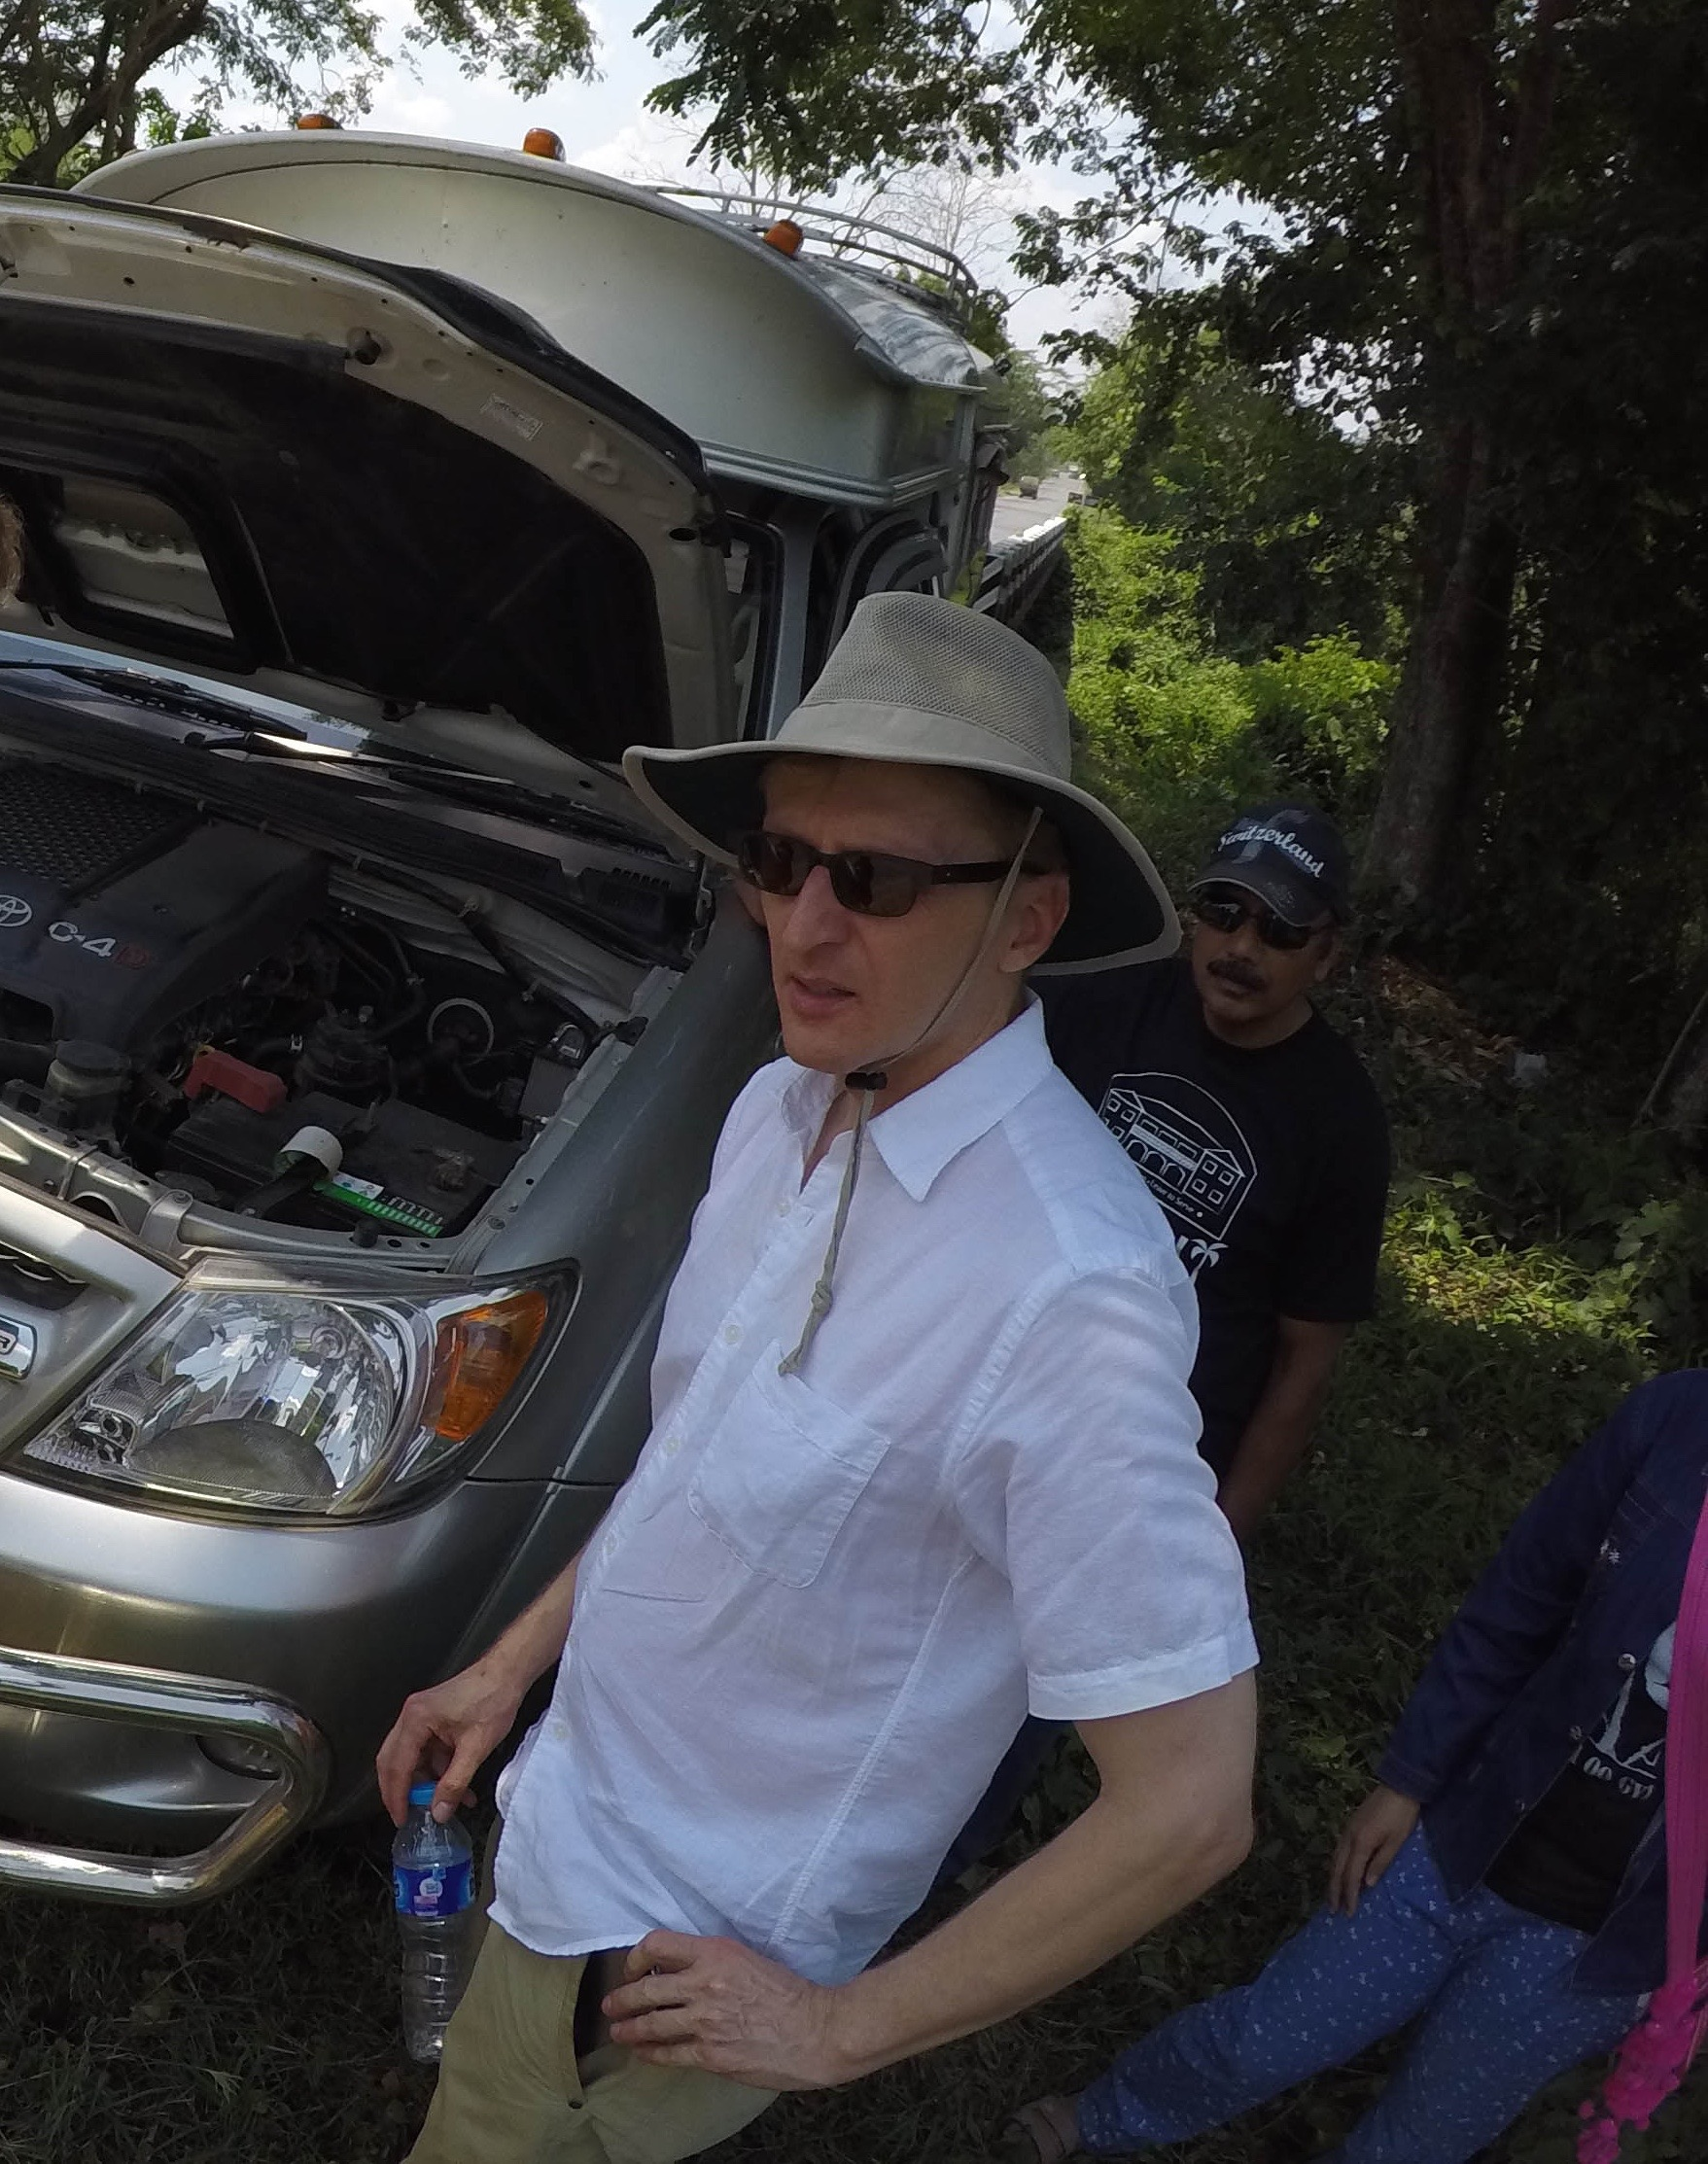 Buffalo News reporter Jerry Zremski, stranded in the Thai jungle after a truck breakdown. (Derek Gee/Buffalo News)